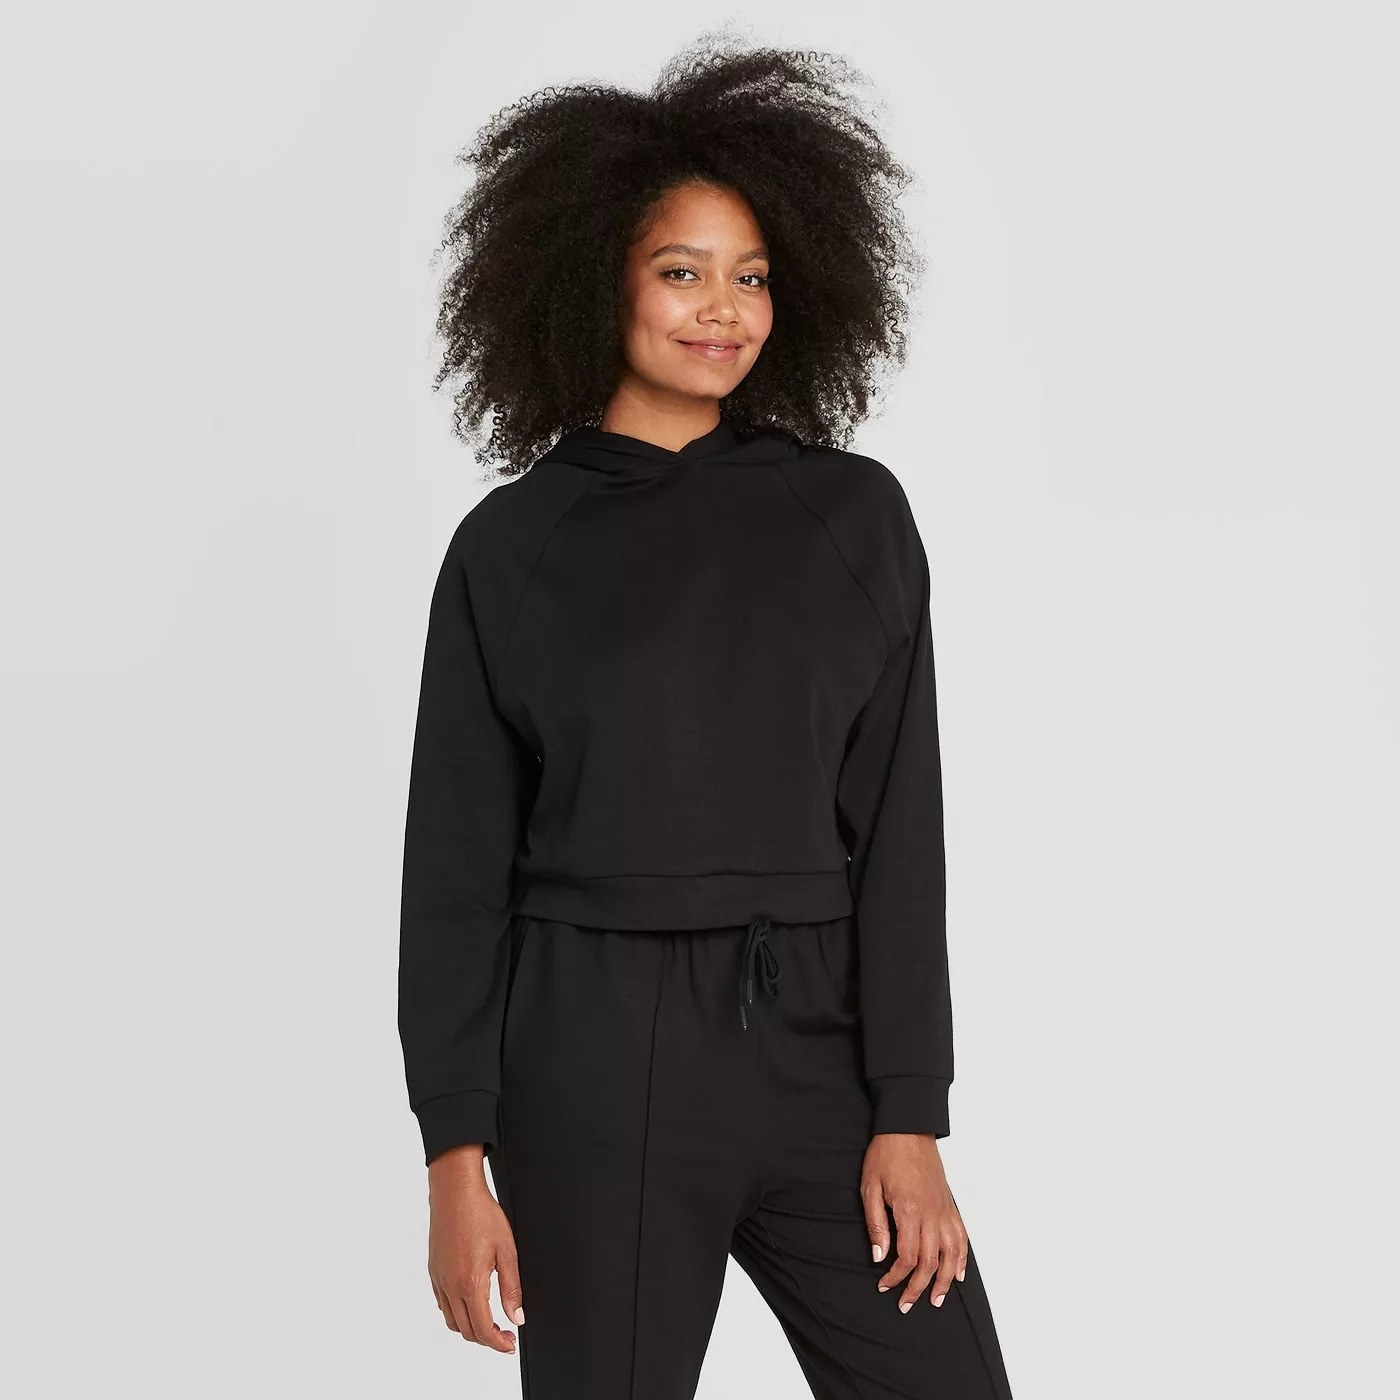 A model wearing a black, hooded sweater with a drawstring detail